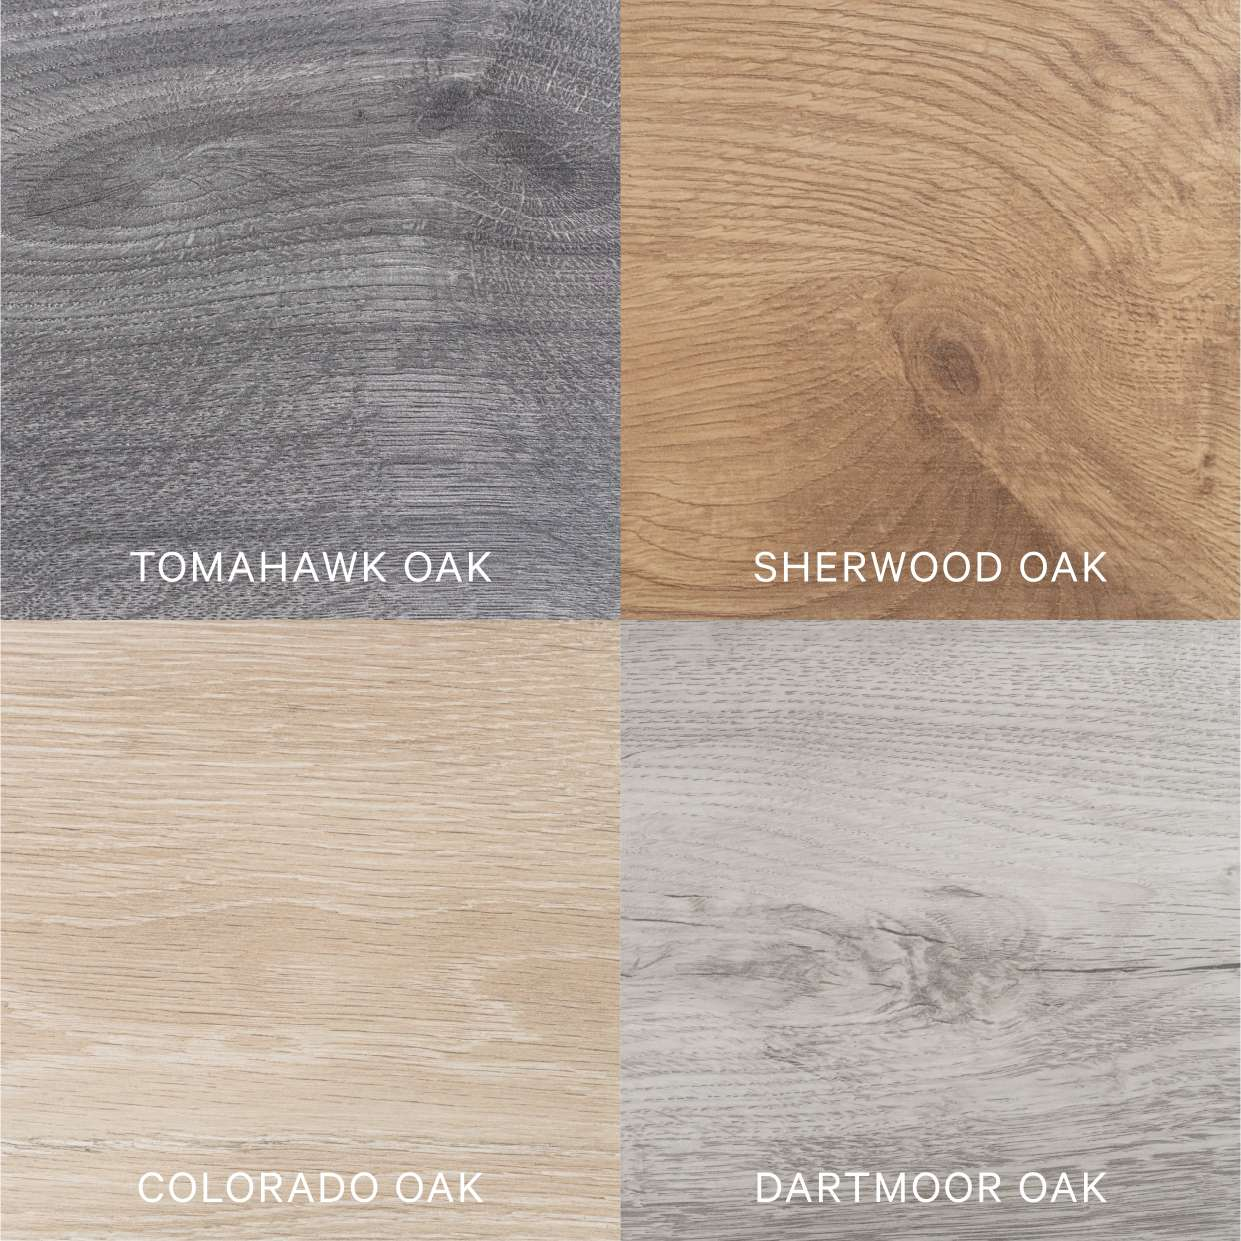 Laminate Floor Supply And Fit, What Supplies Do I Need To Lay Laminate Flooring